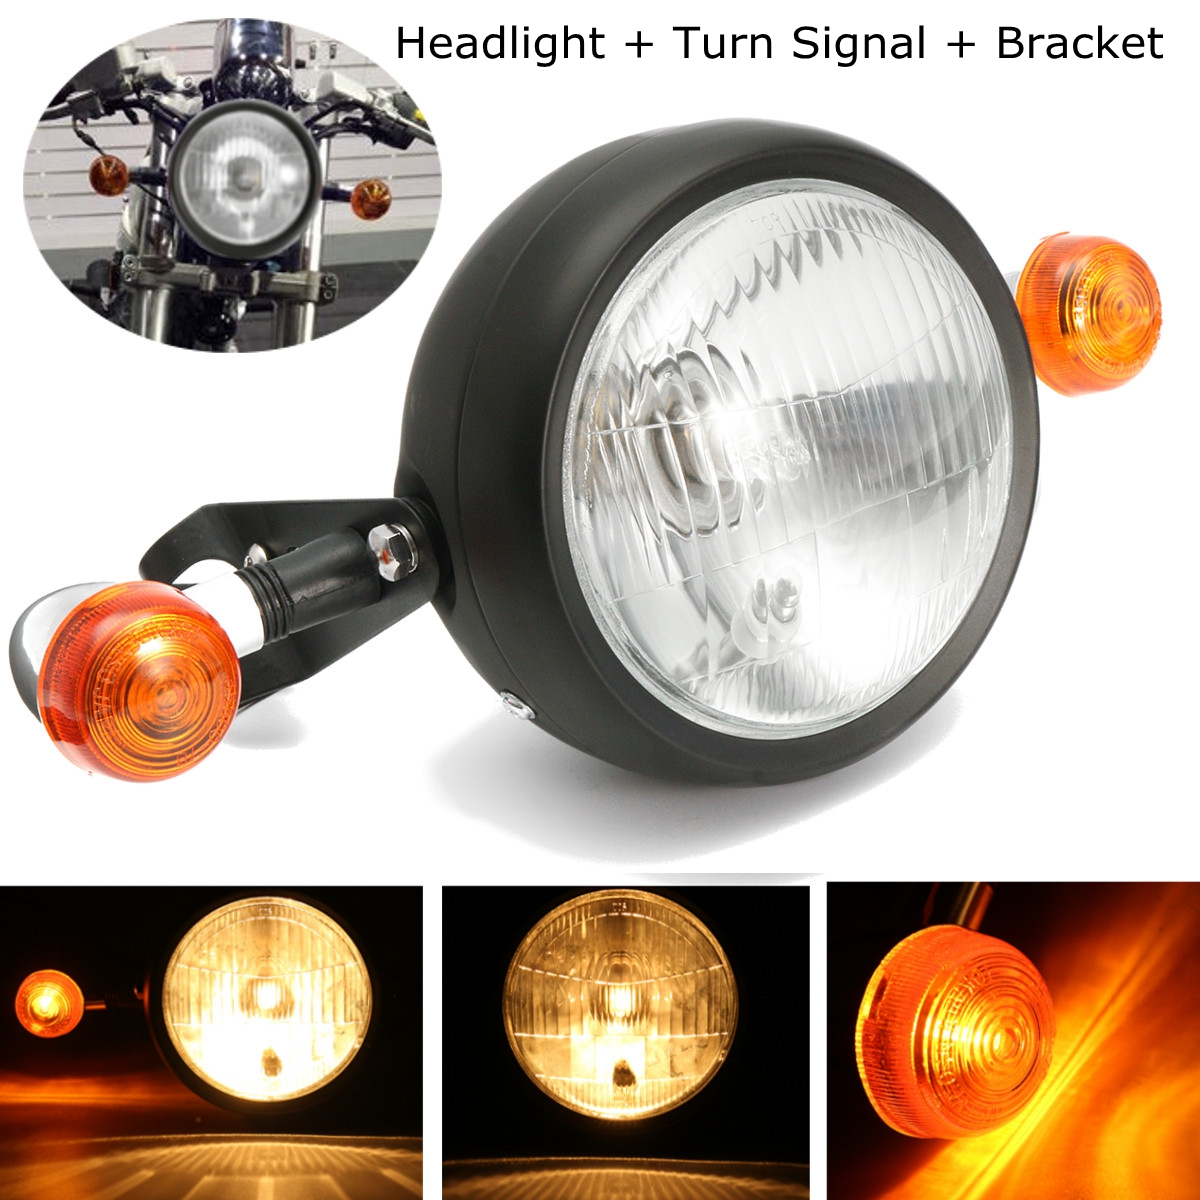 Motorcycle Retro Headlight Turn Signal Lamp Bulb Mount Cafe Racer Bobber Chopper Custom For Motor Bikes/  Cafe Racers, Etc